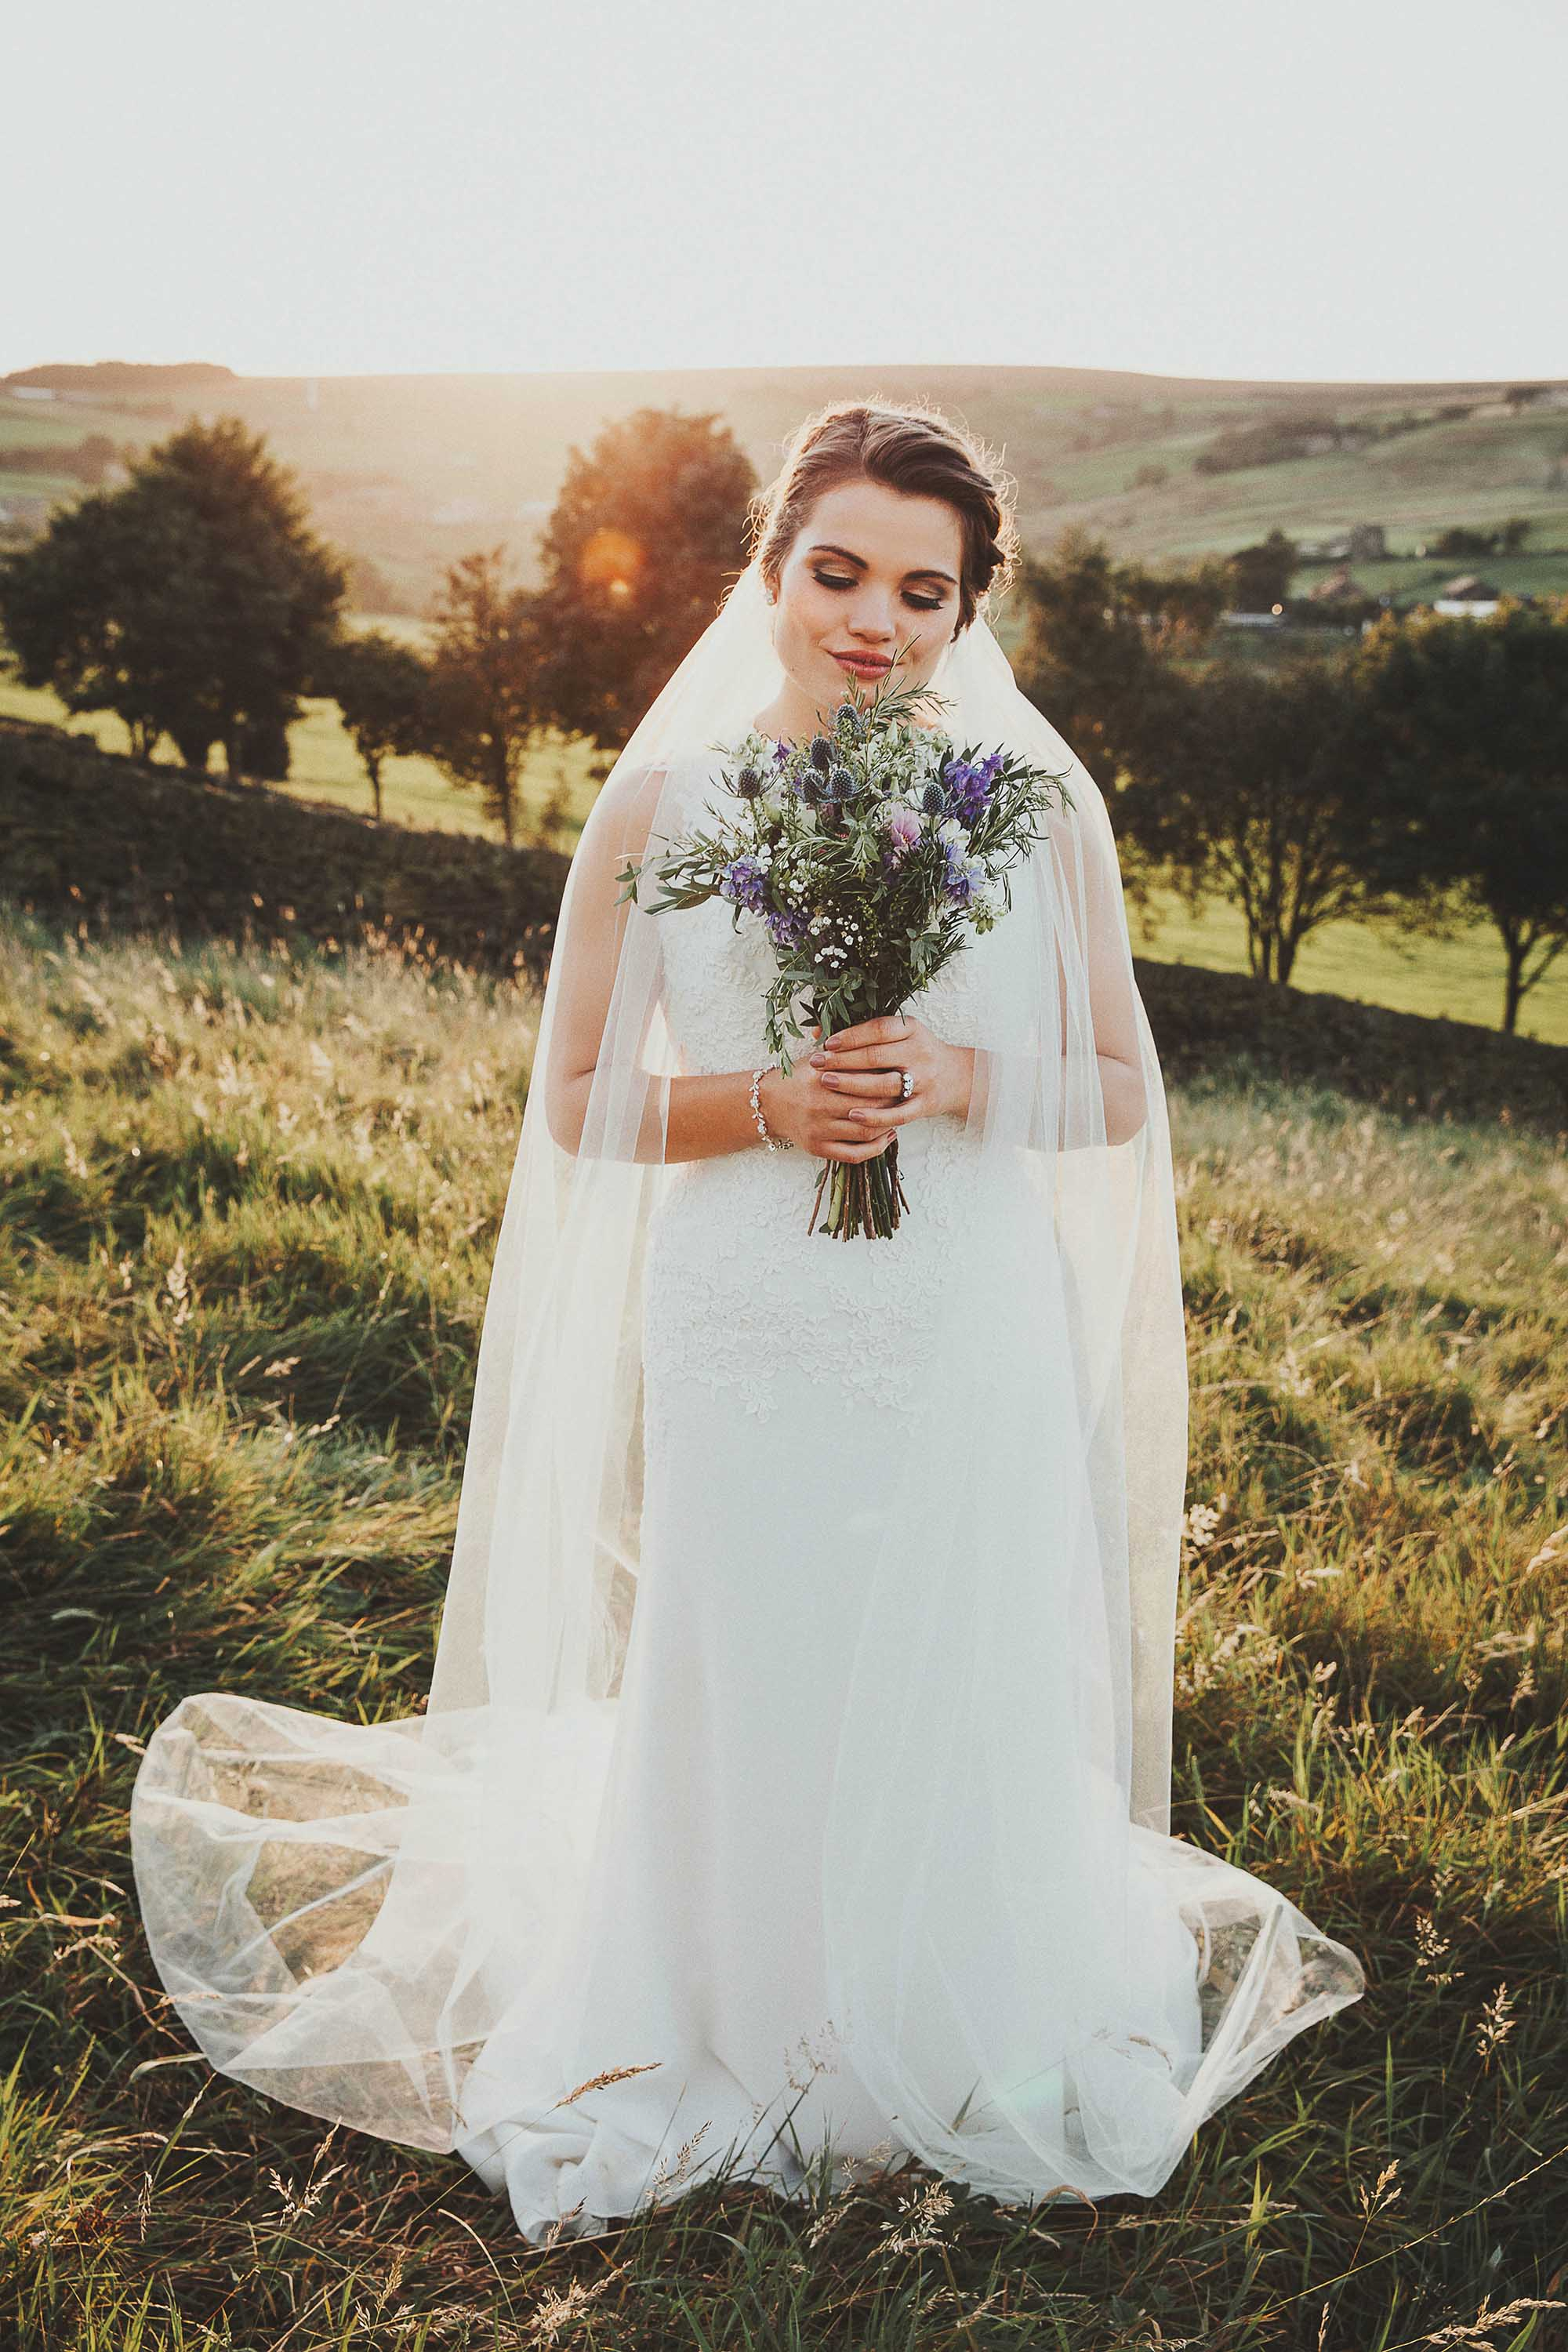 Sunset wedding photography in Yorkshire